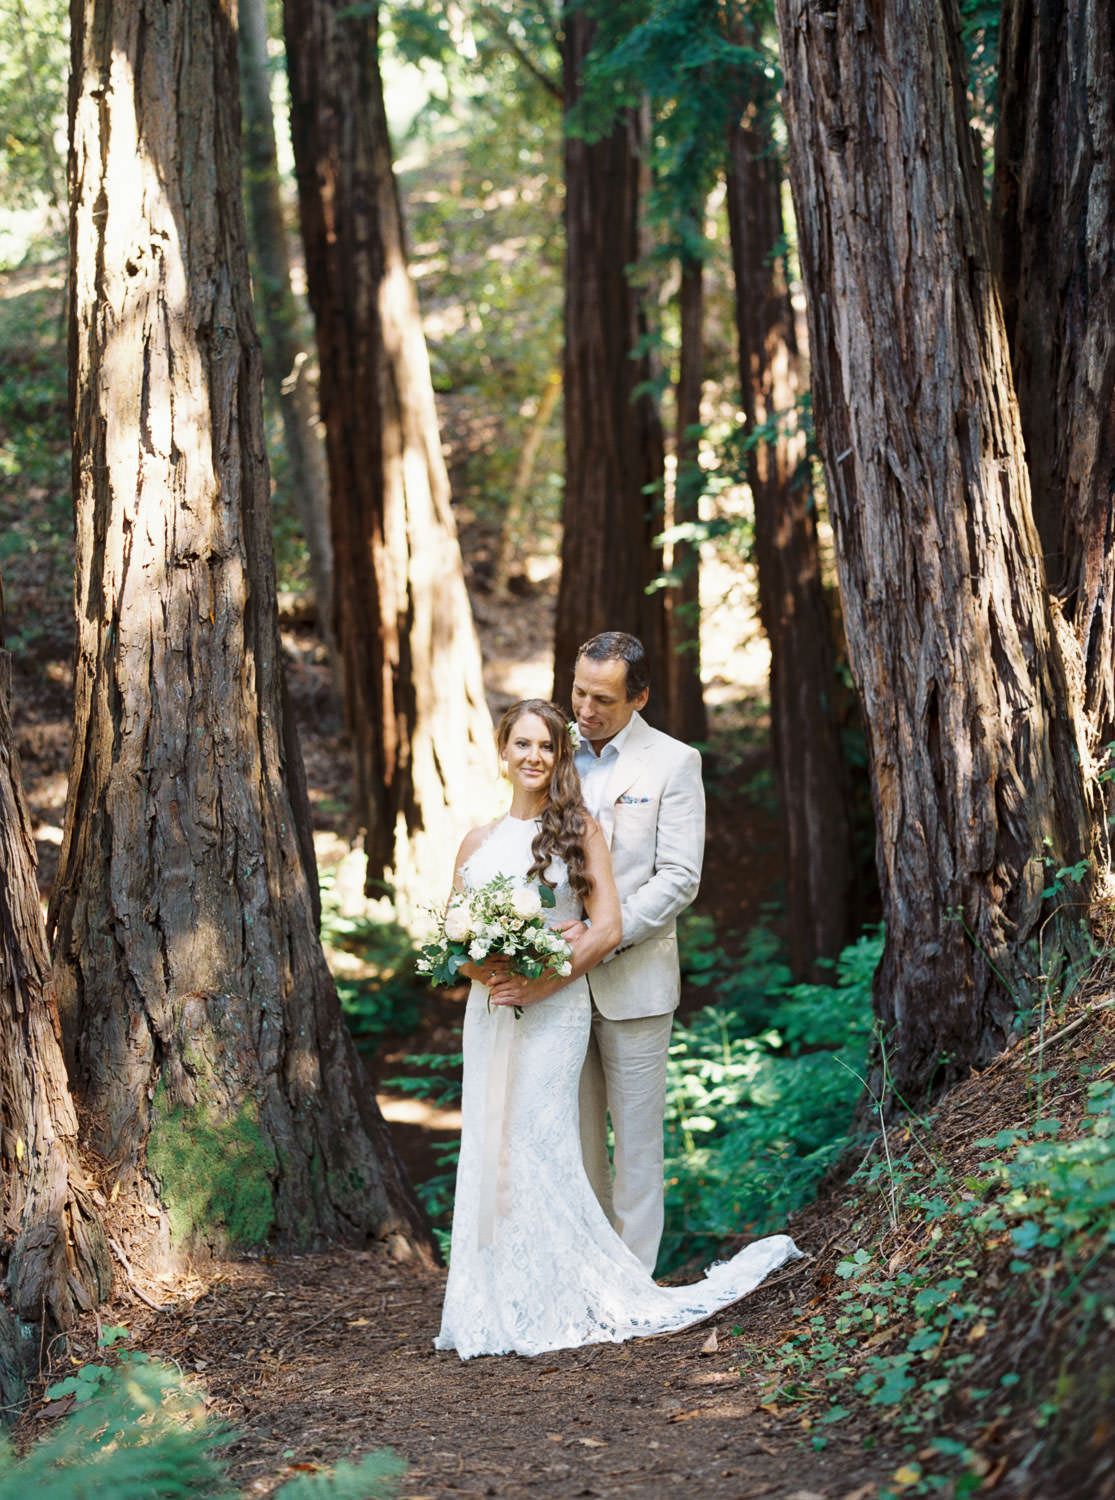 Big-Sur-Elopement-Santa-Barbara-Fine-Art-Wedding-Photography-161.jpg